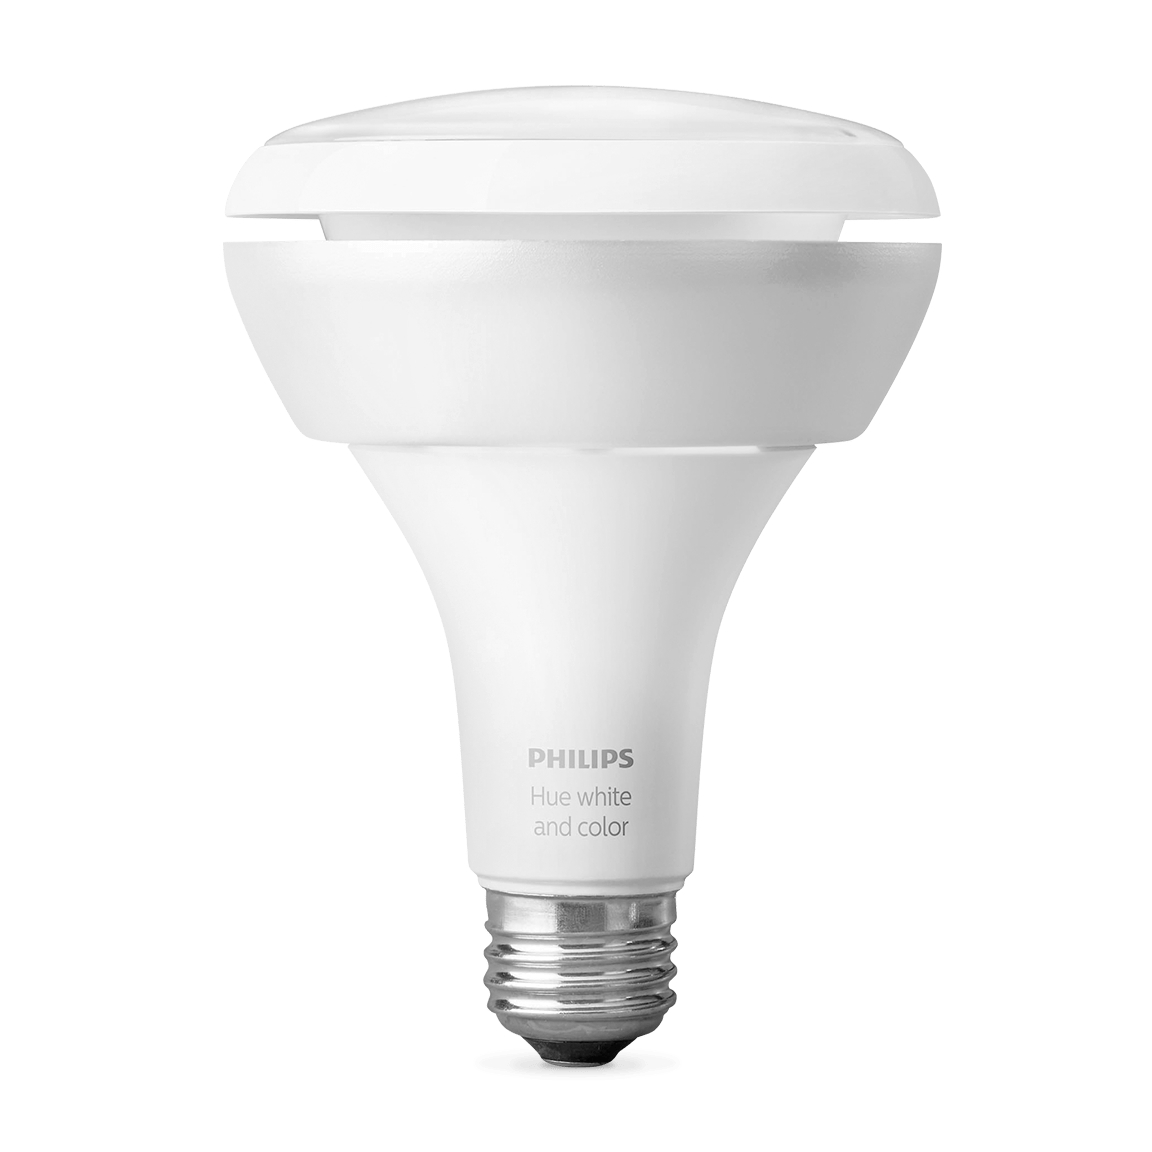 Philips Hue Led Light Smartthings Philips Hue White And Color Ambiance Led Light Bulb